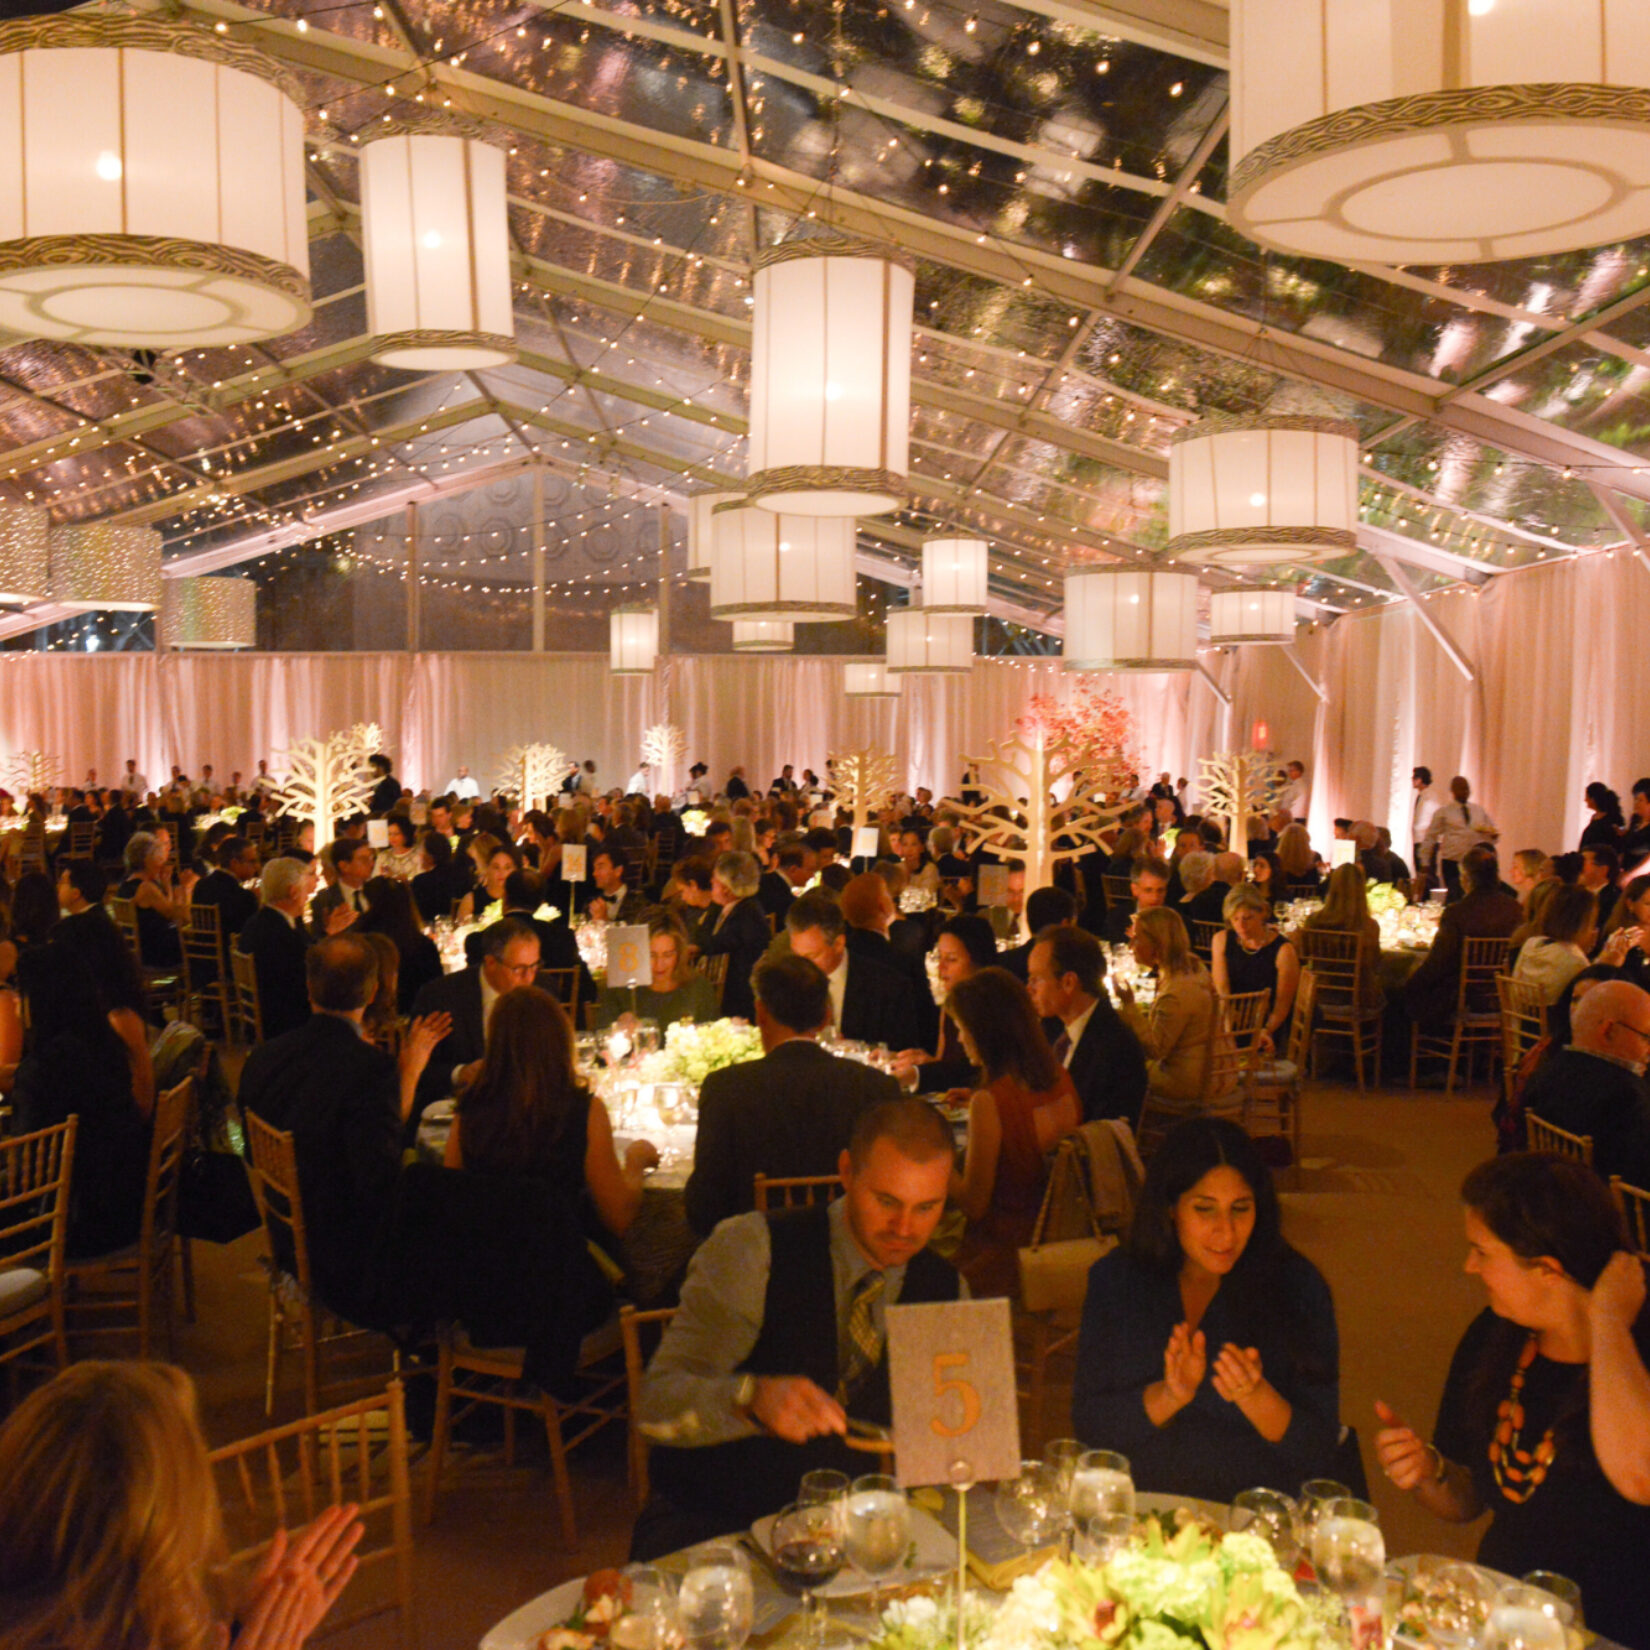 Celebrants dining in style in a tent